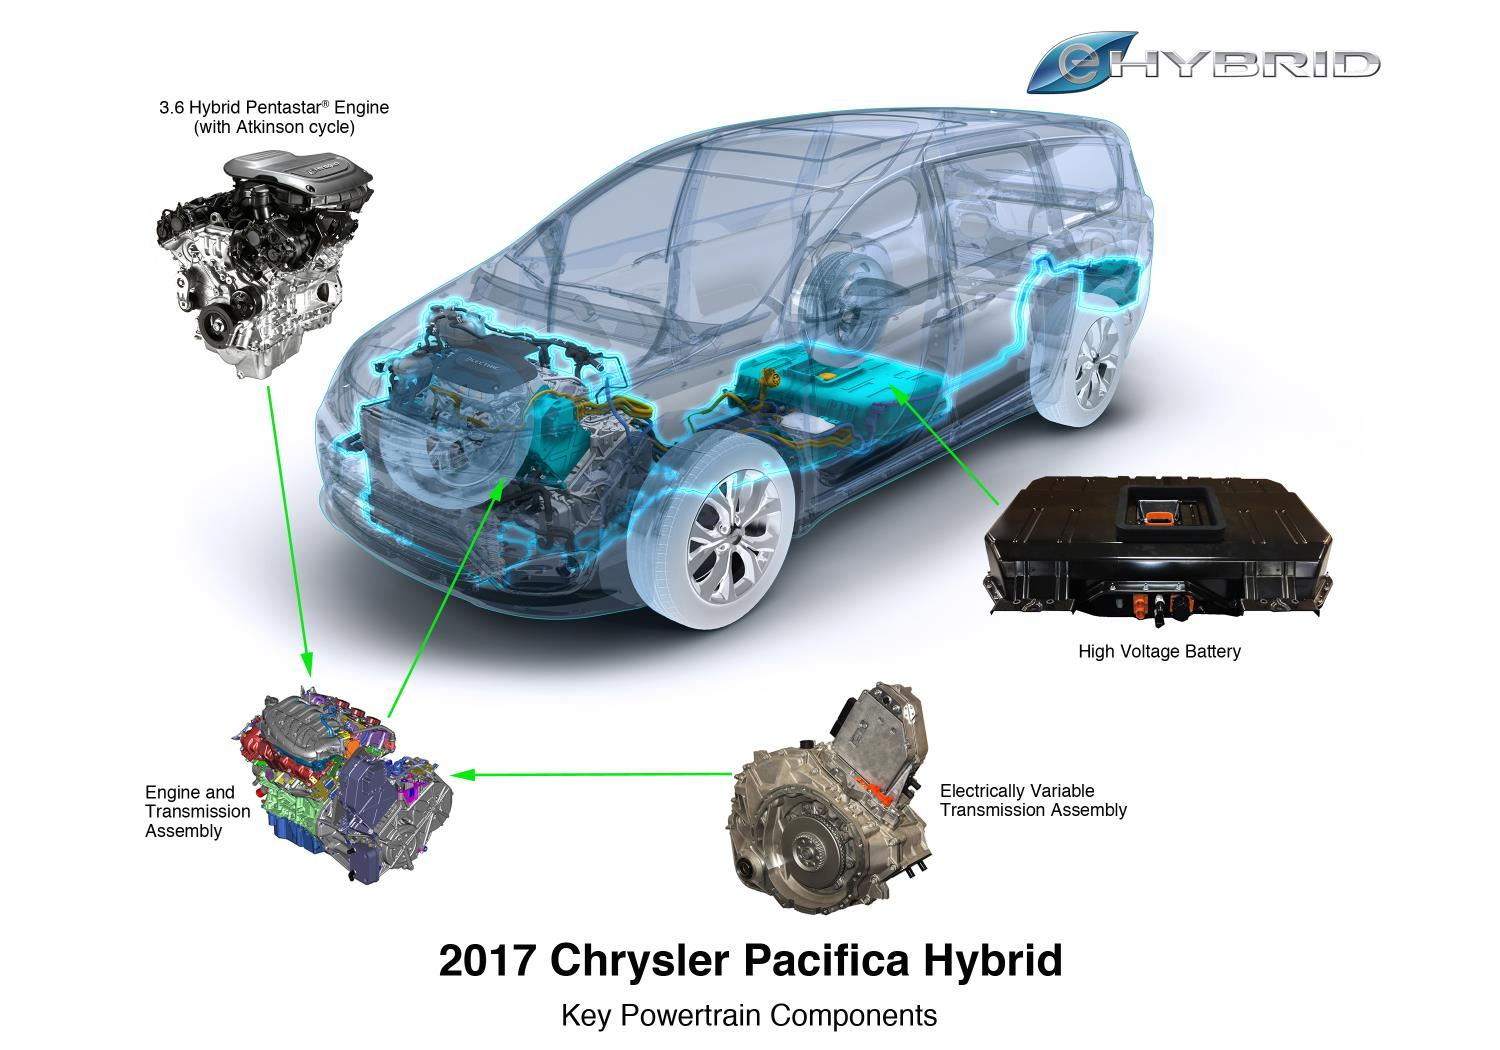 Chrysler Pacifica EV Reportedly Coming to CES 2017 - autoevolution